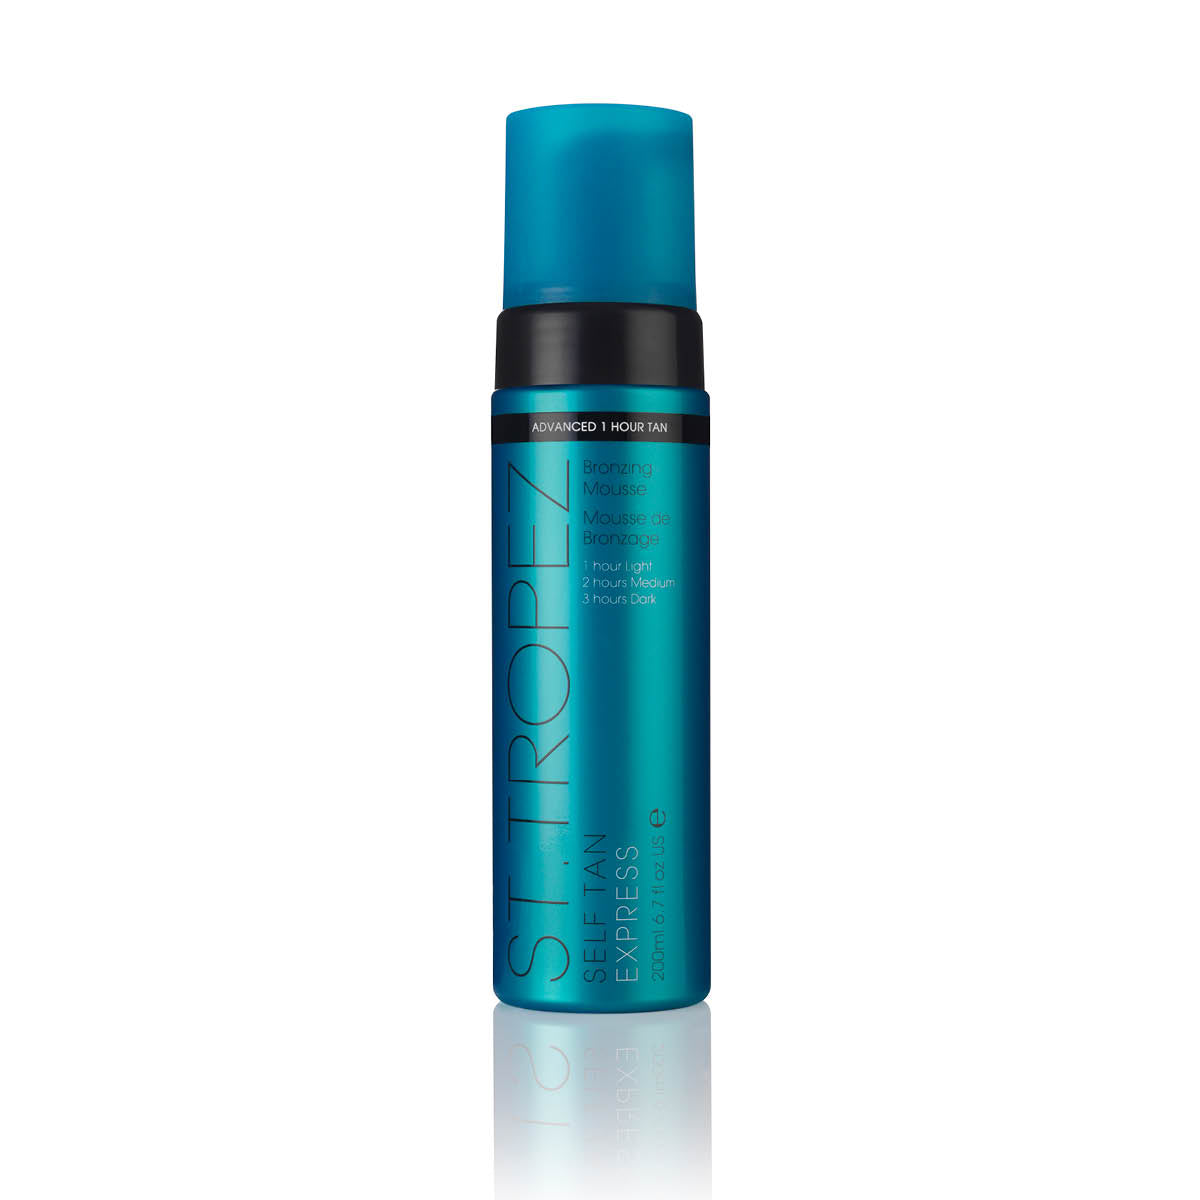 St. Tropez Self Tan Express Bronzing Mousse 200ml